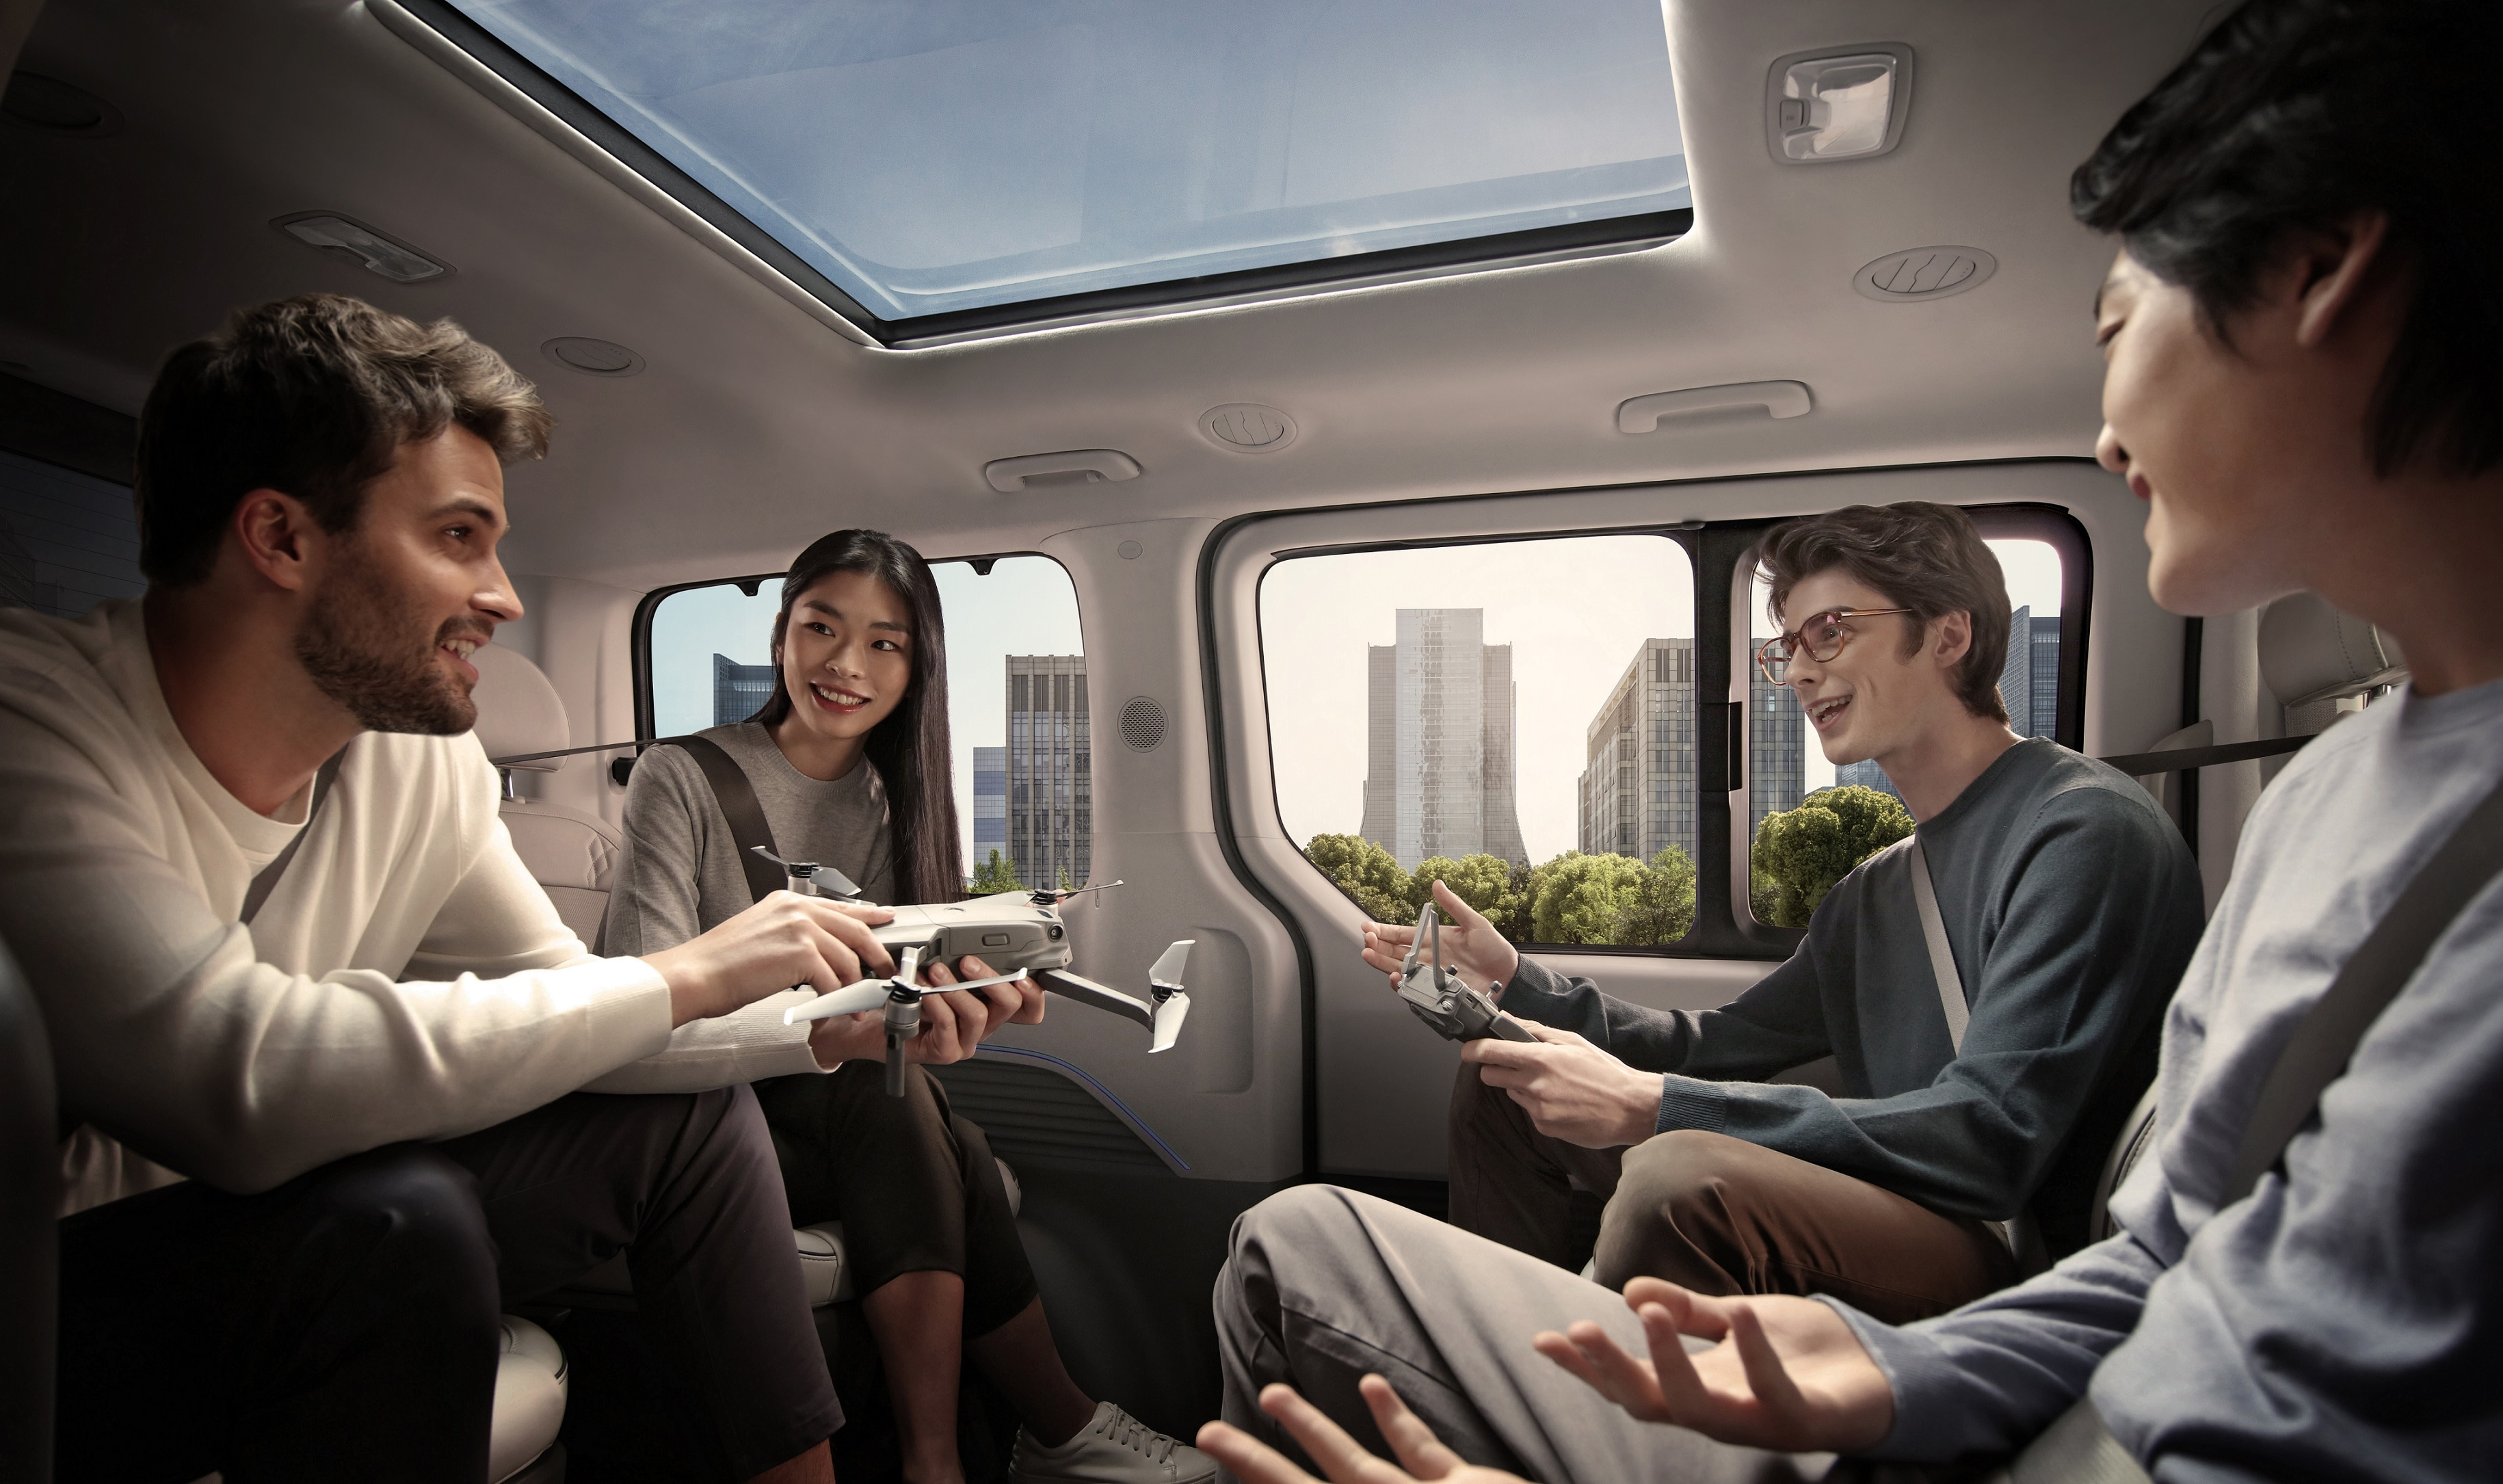 The Hyundai Staria will be available in 11, 9, 7-seat configurations as well as a two-seater commercial version.